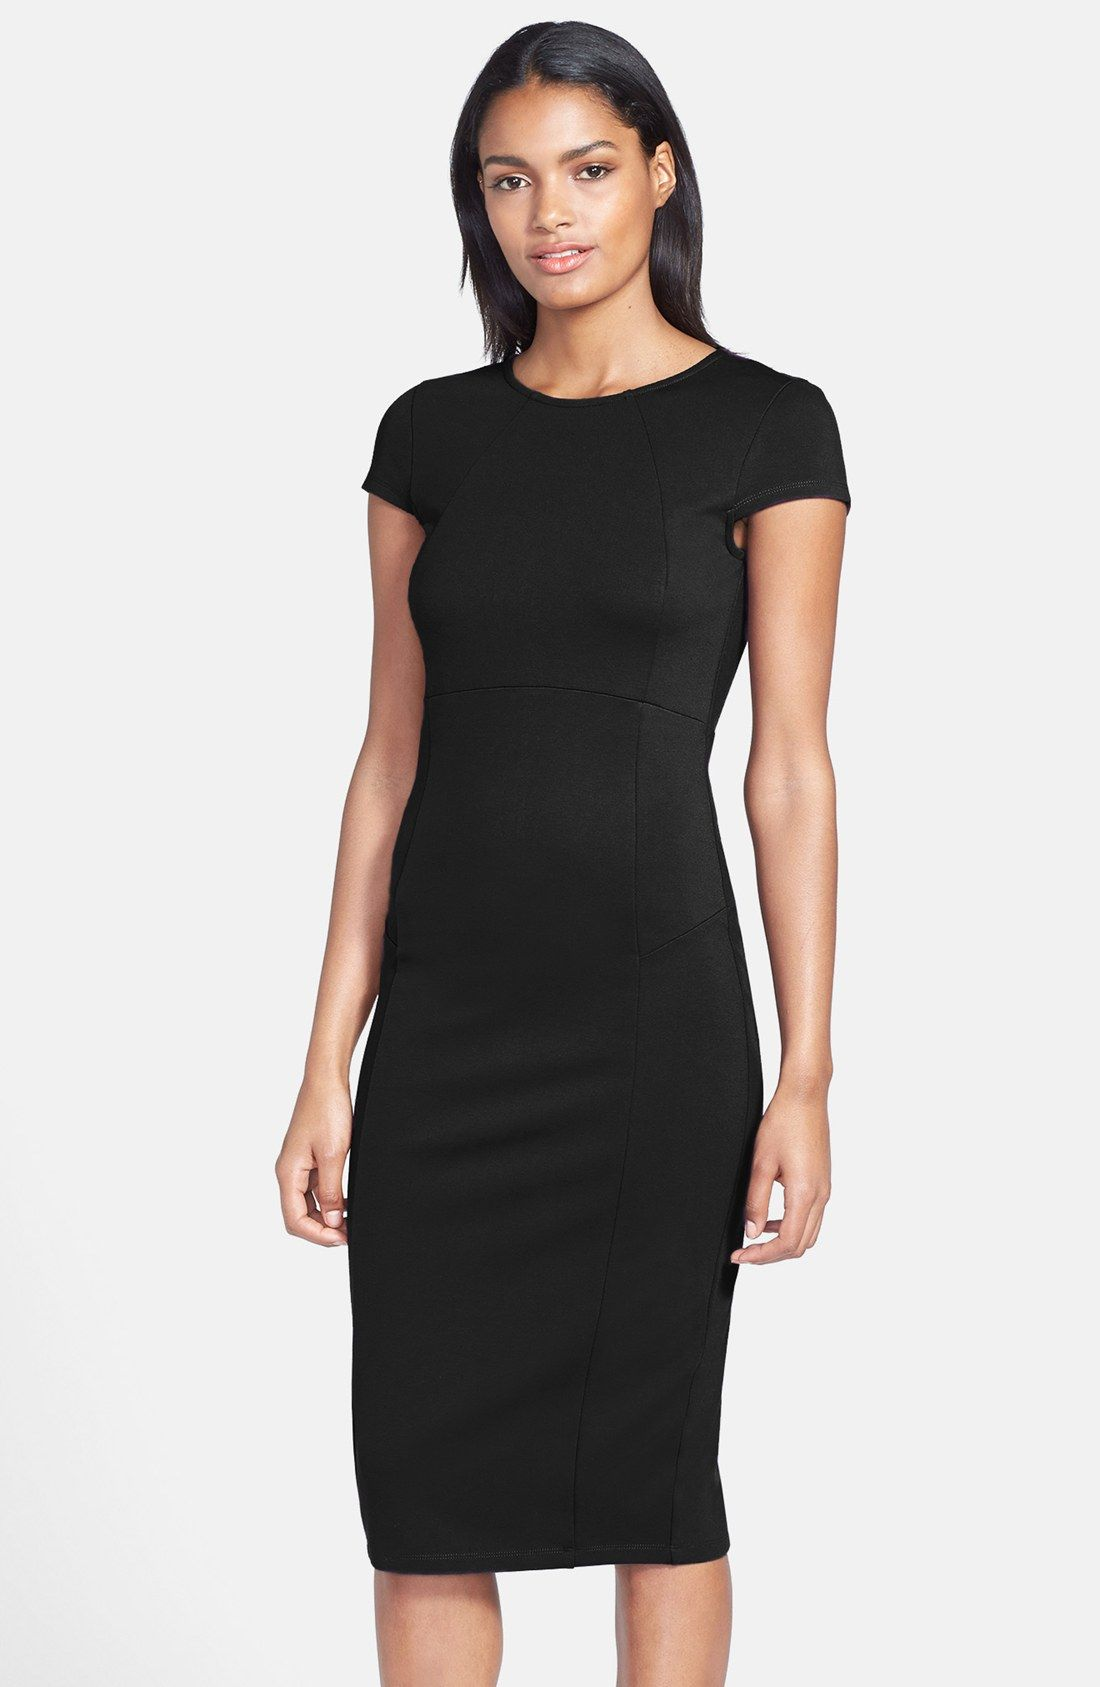 Thor 2 black dress on sale